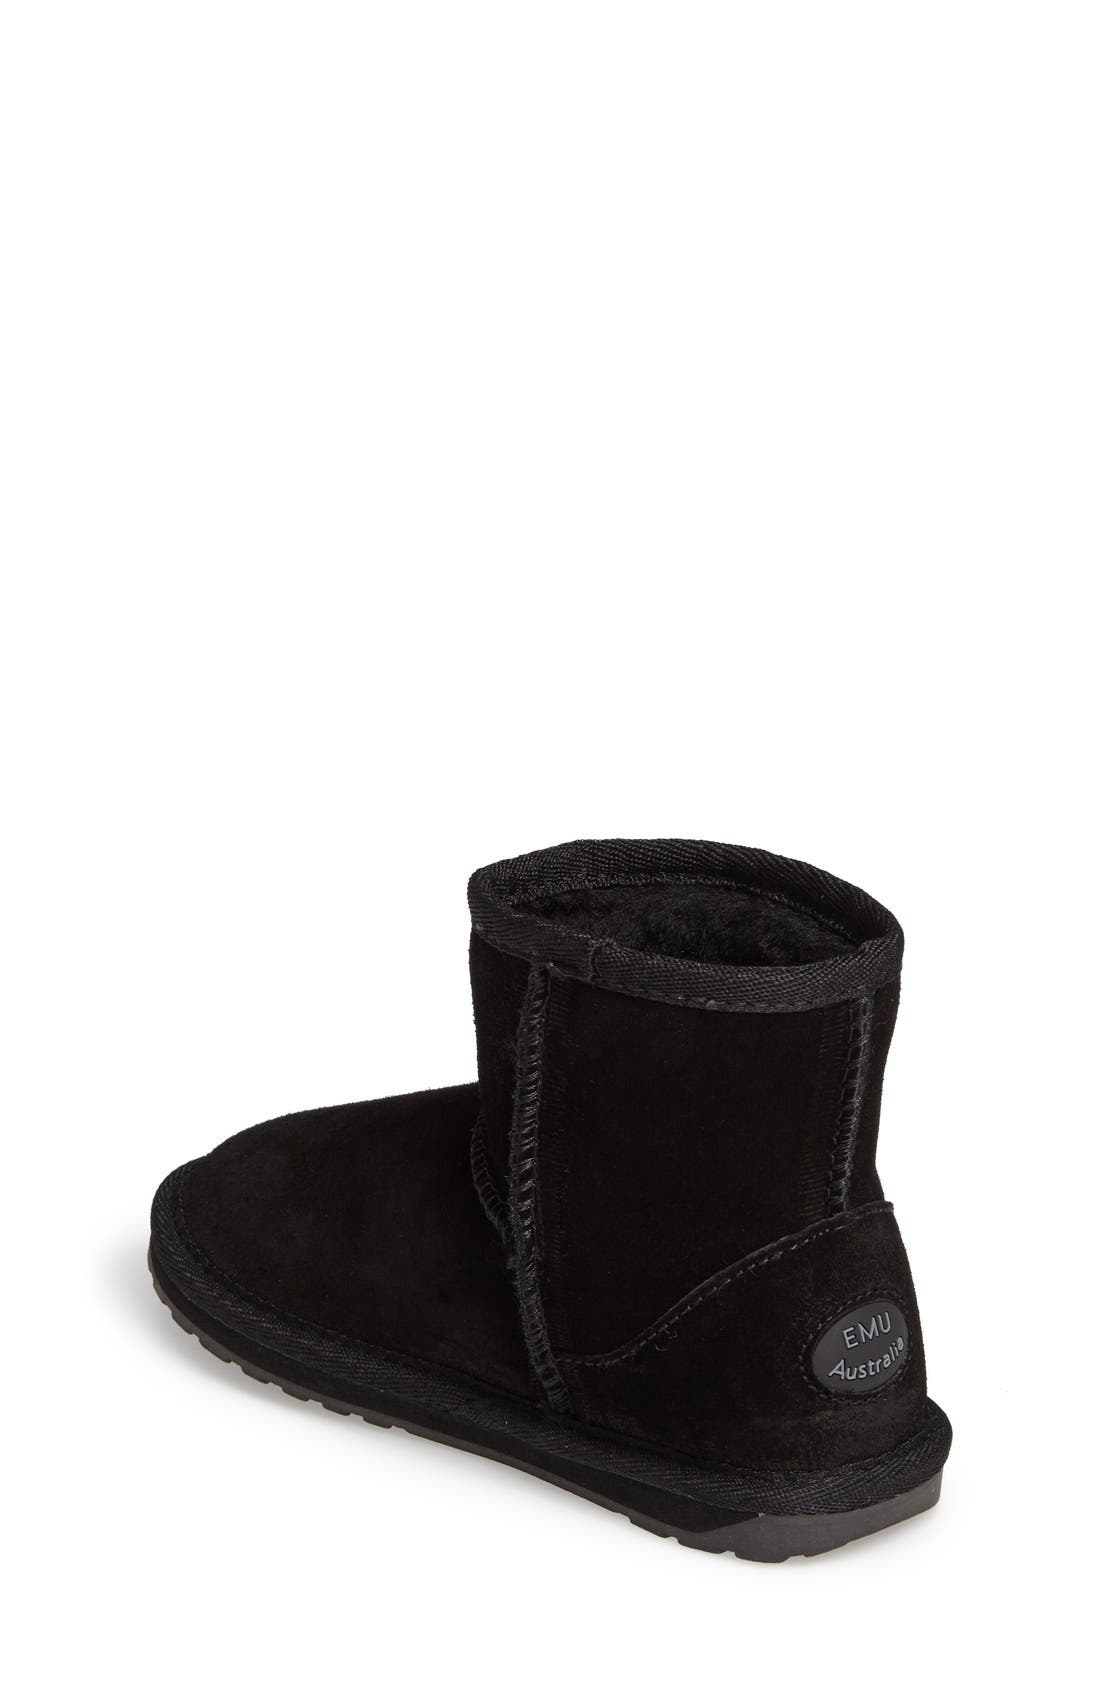 Wallaby Boot,                             Alternate thumbnail 2, color,                             Black